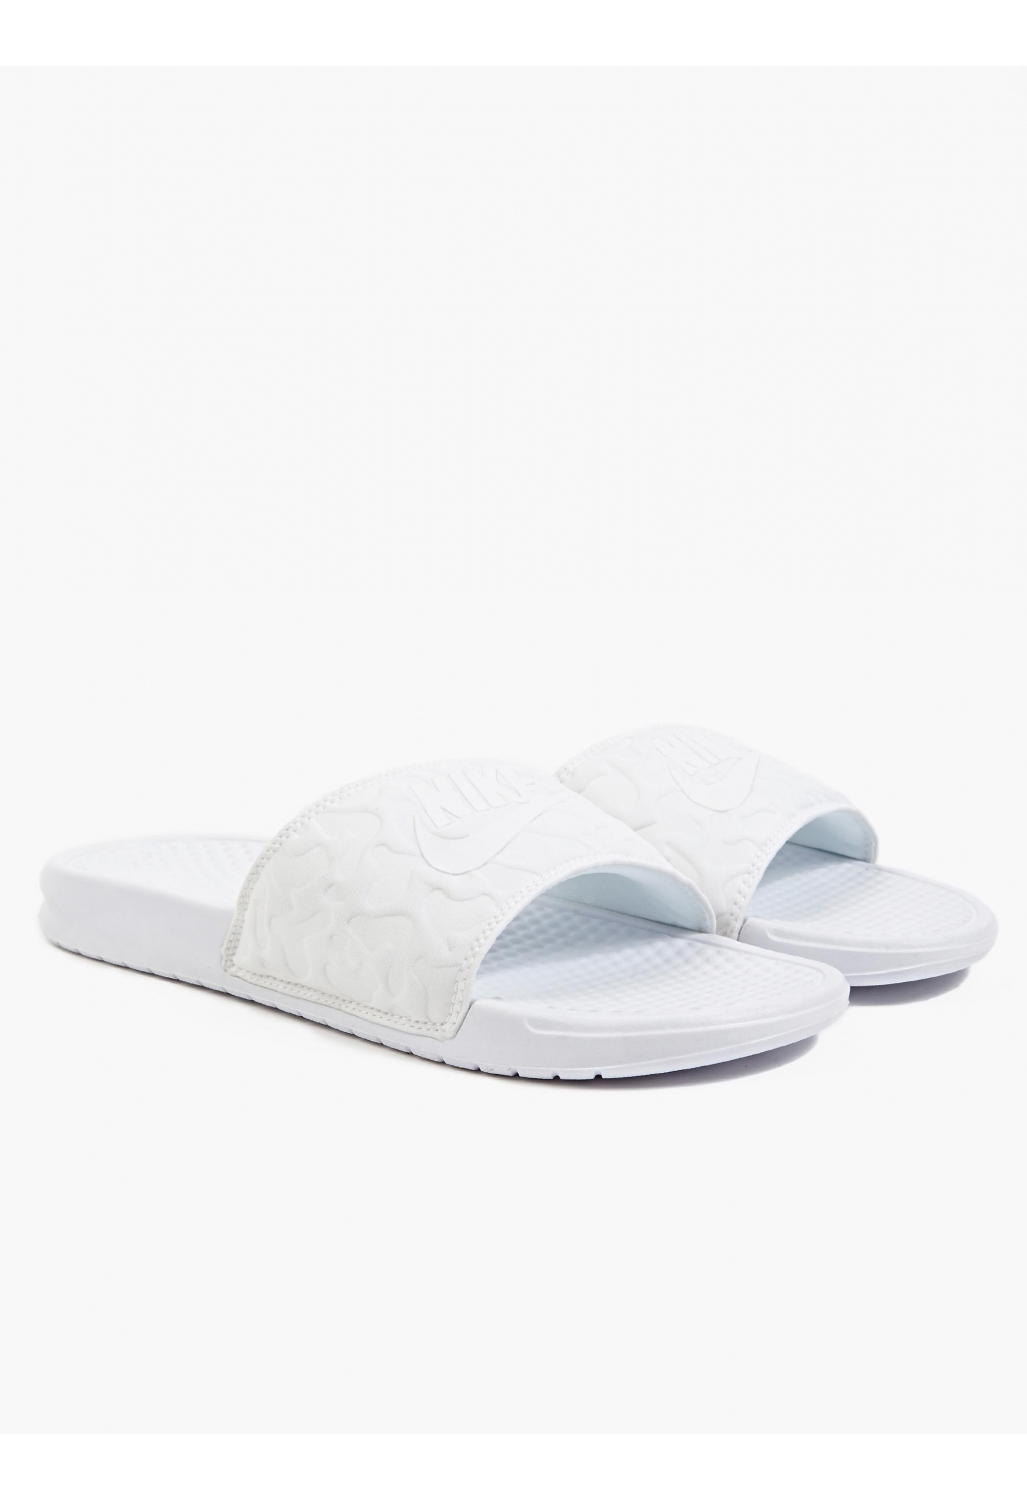 Nike Men'S White Benassi Jdi Pool Slider in White for Men | Lyst